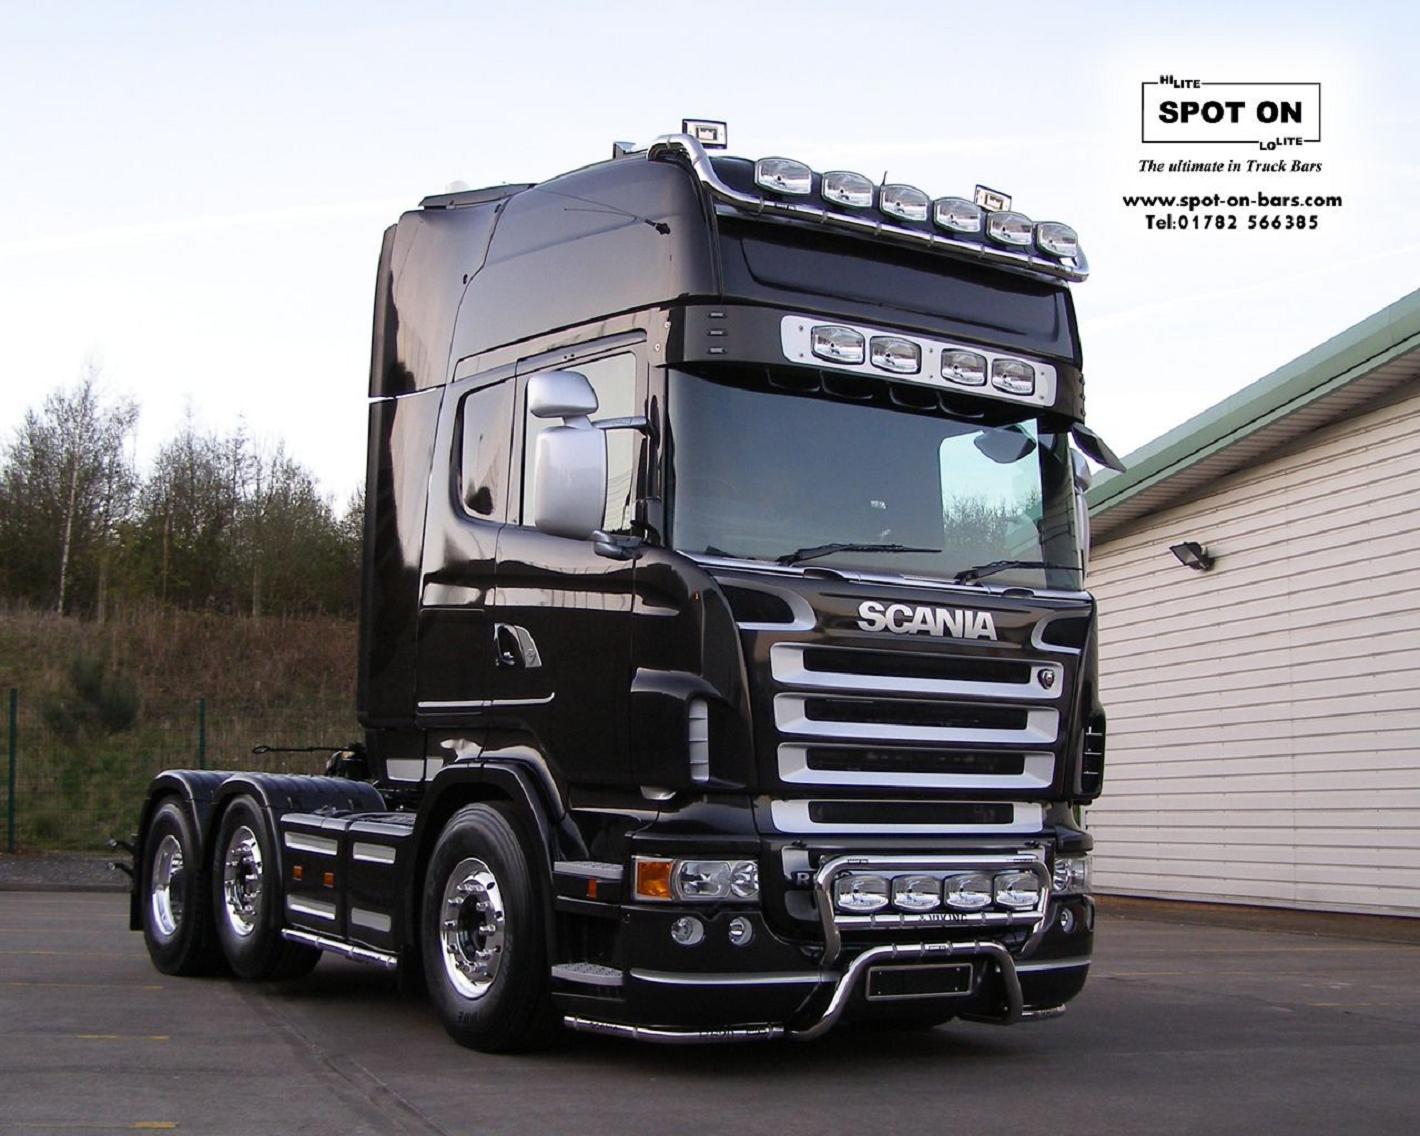 wallpapers scania truck wallpaper scania truck wallpaper scania truck 1420x1136